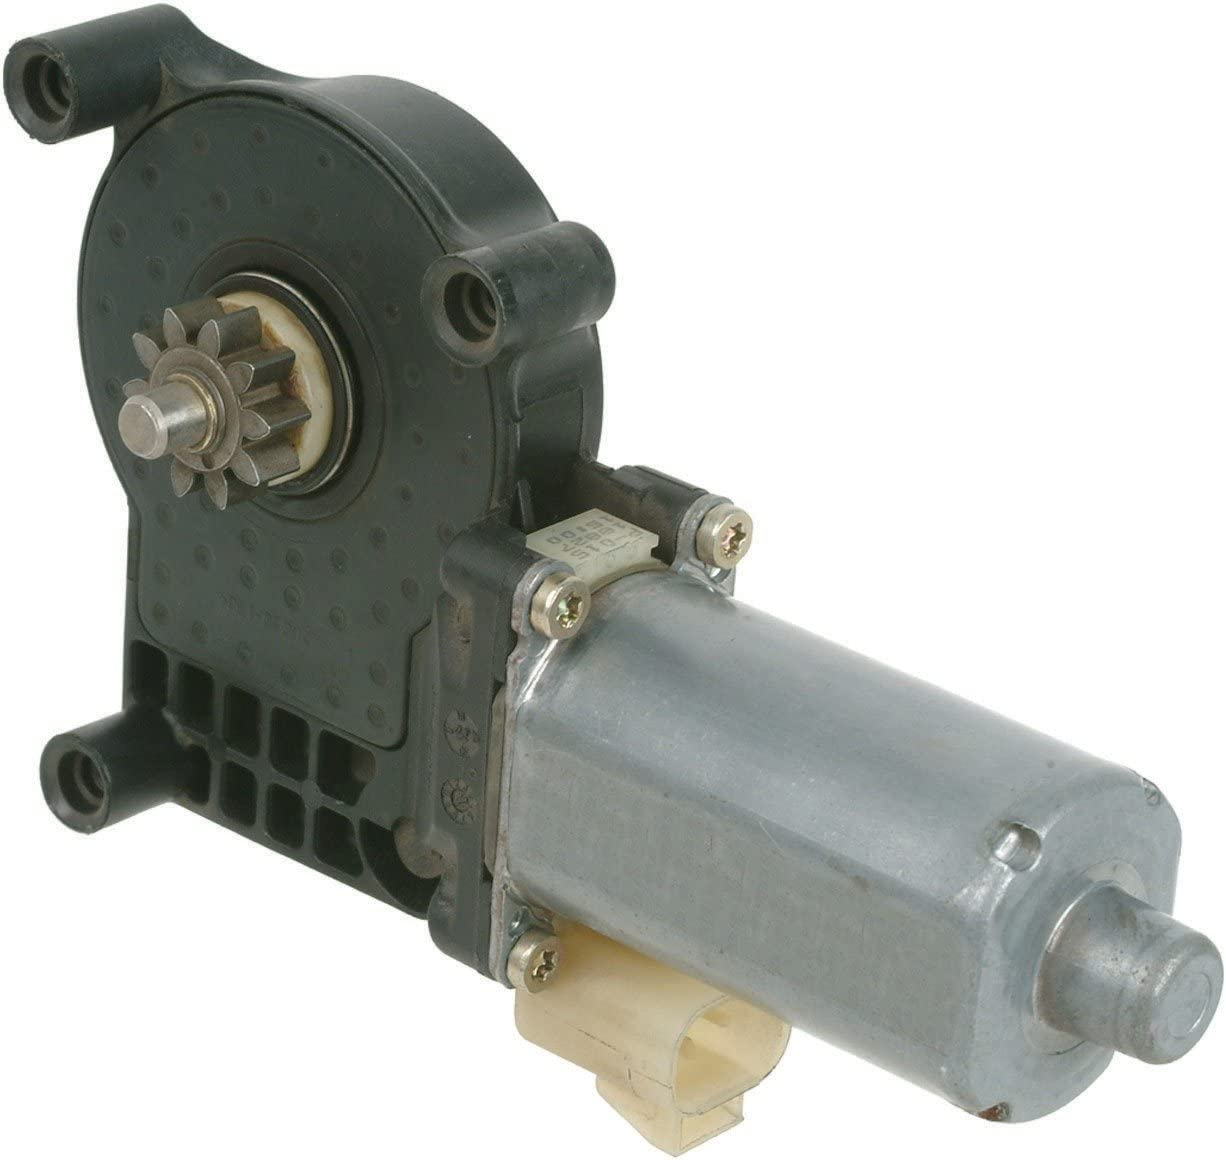 Cardone 47-3410 Remanufactured Import Window Lift Motor